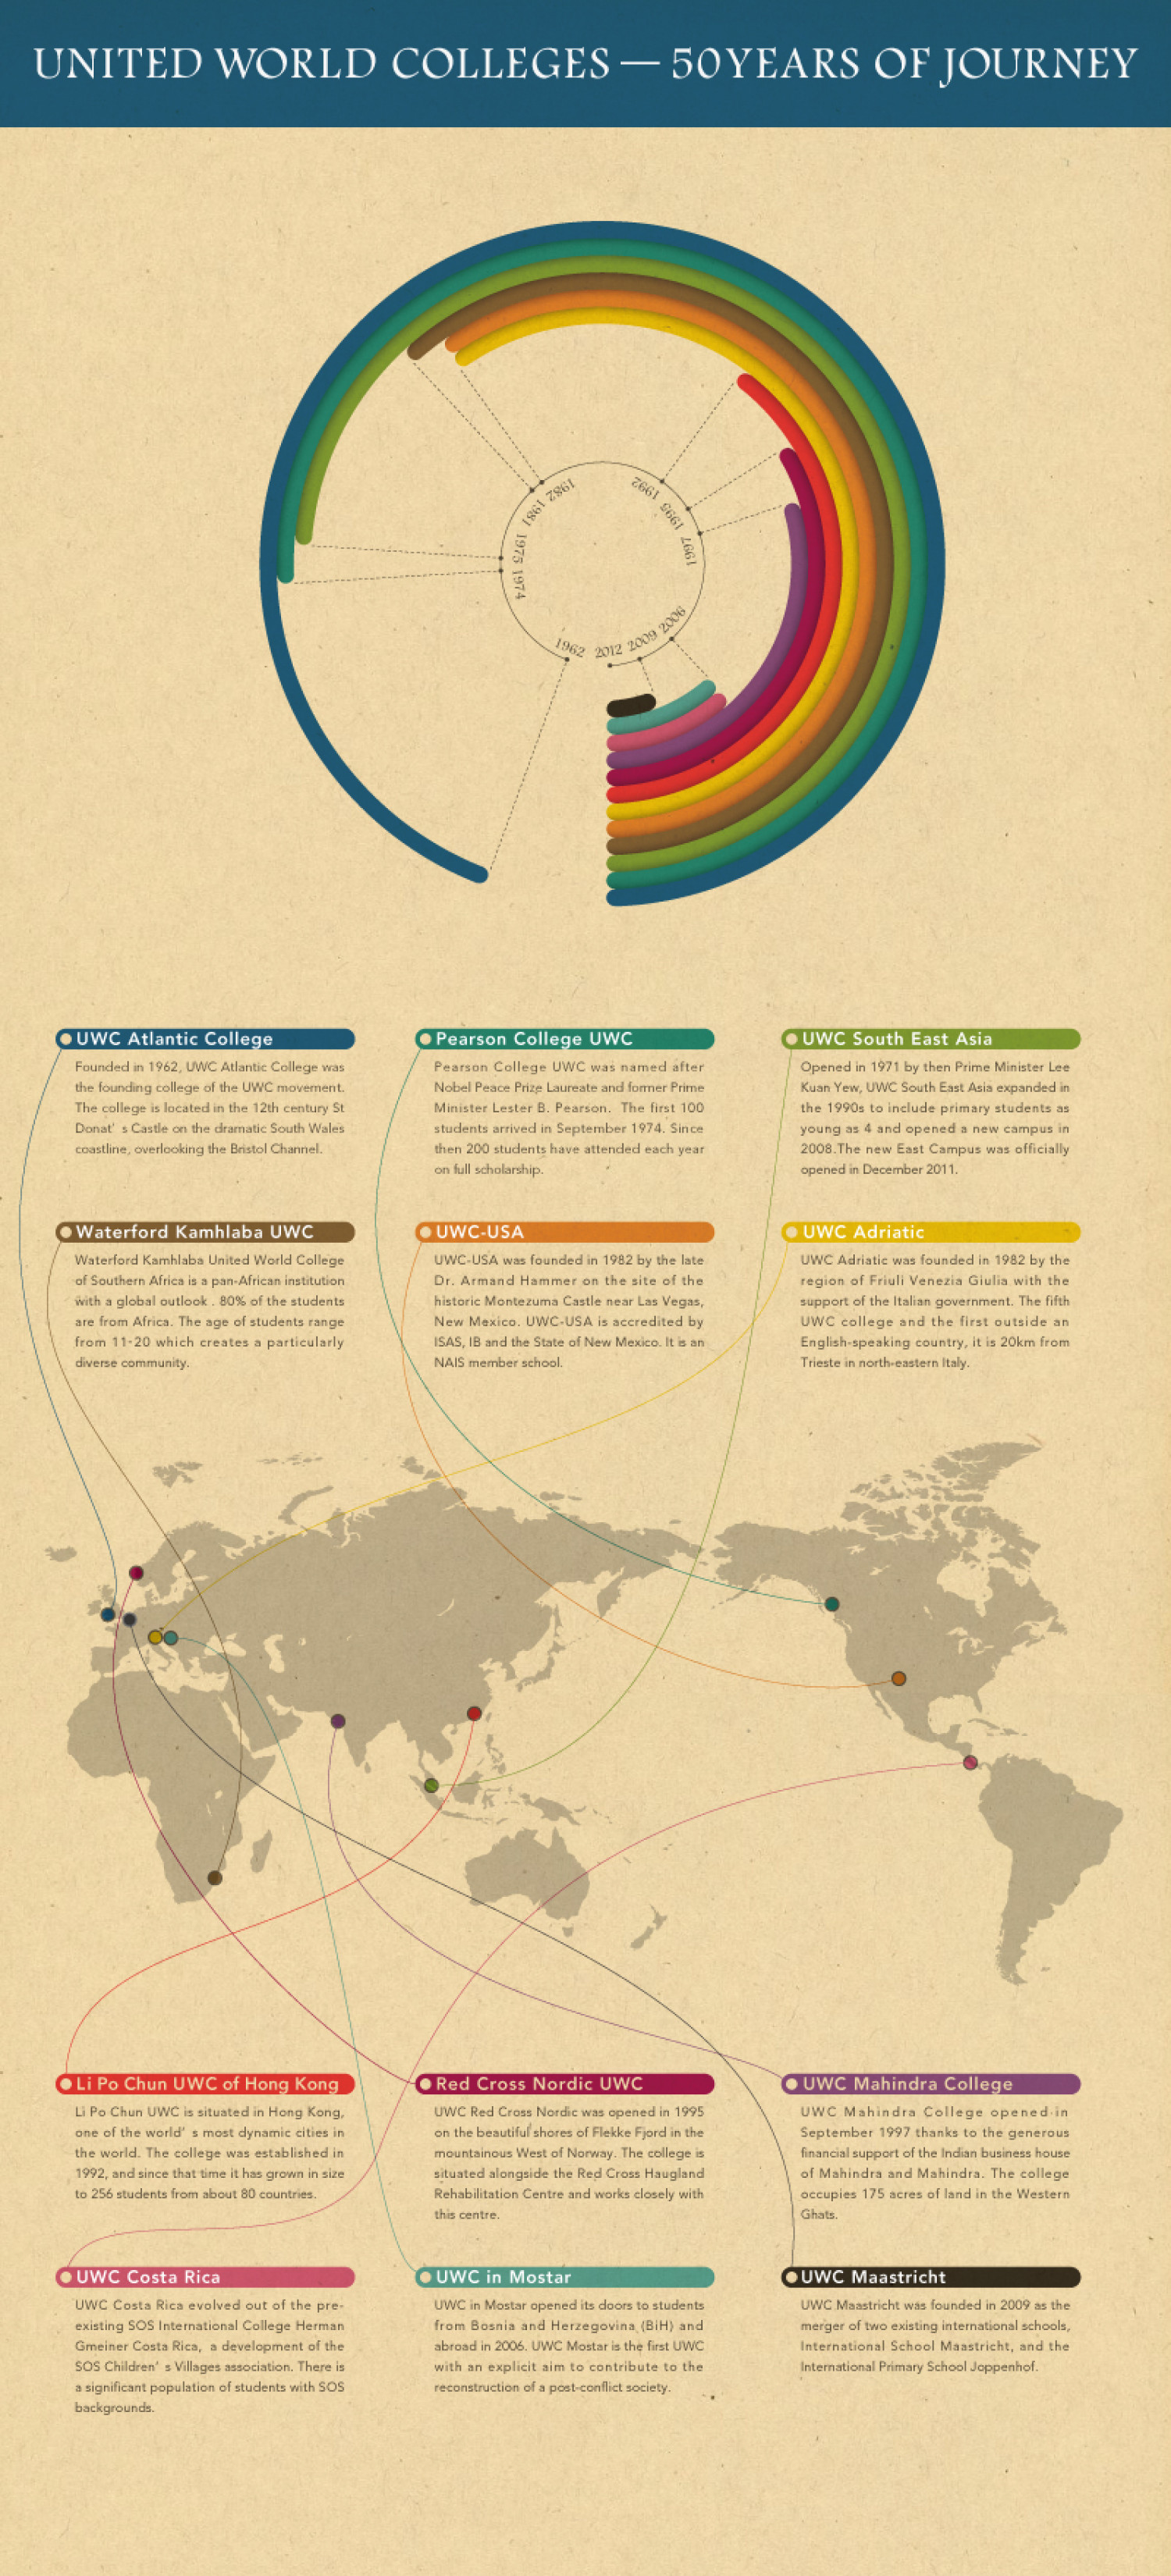 United World Colleges: 50 Years of Journey Infographic